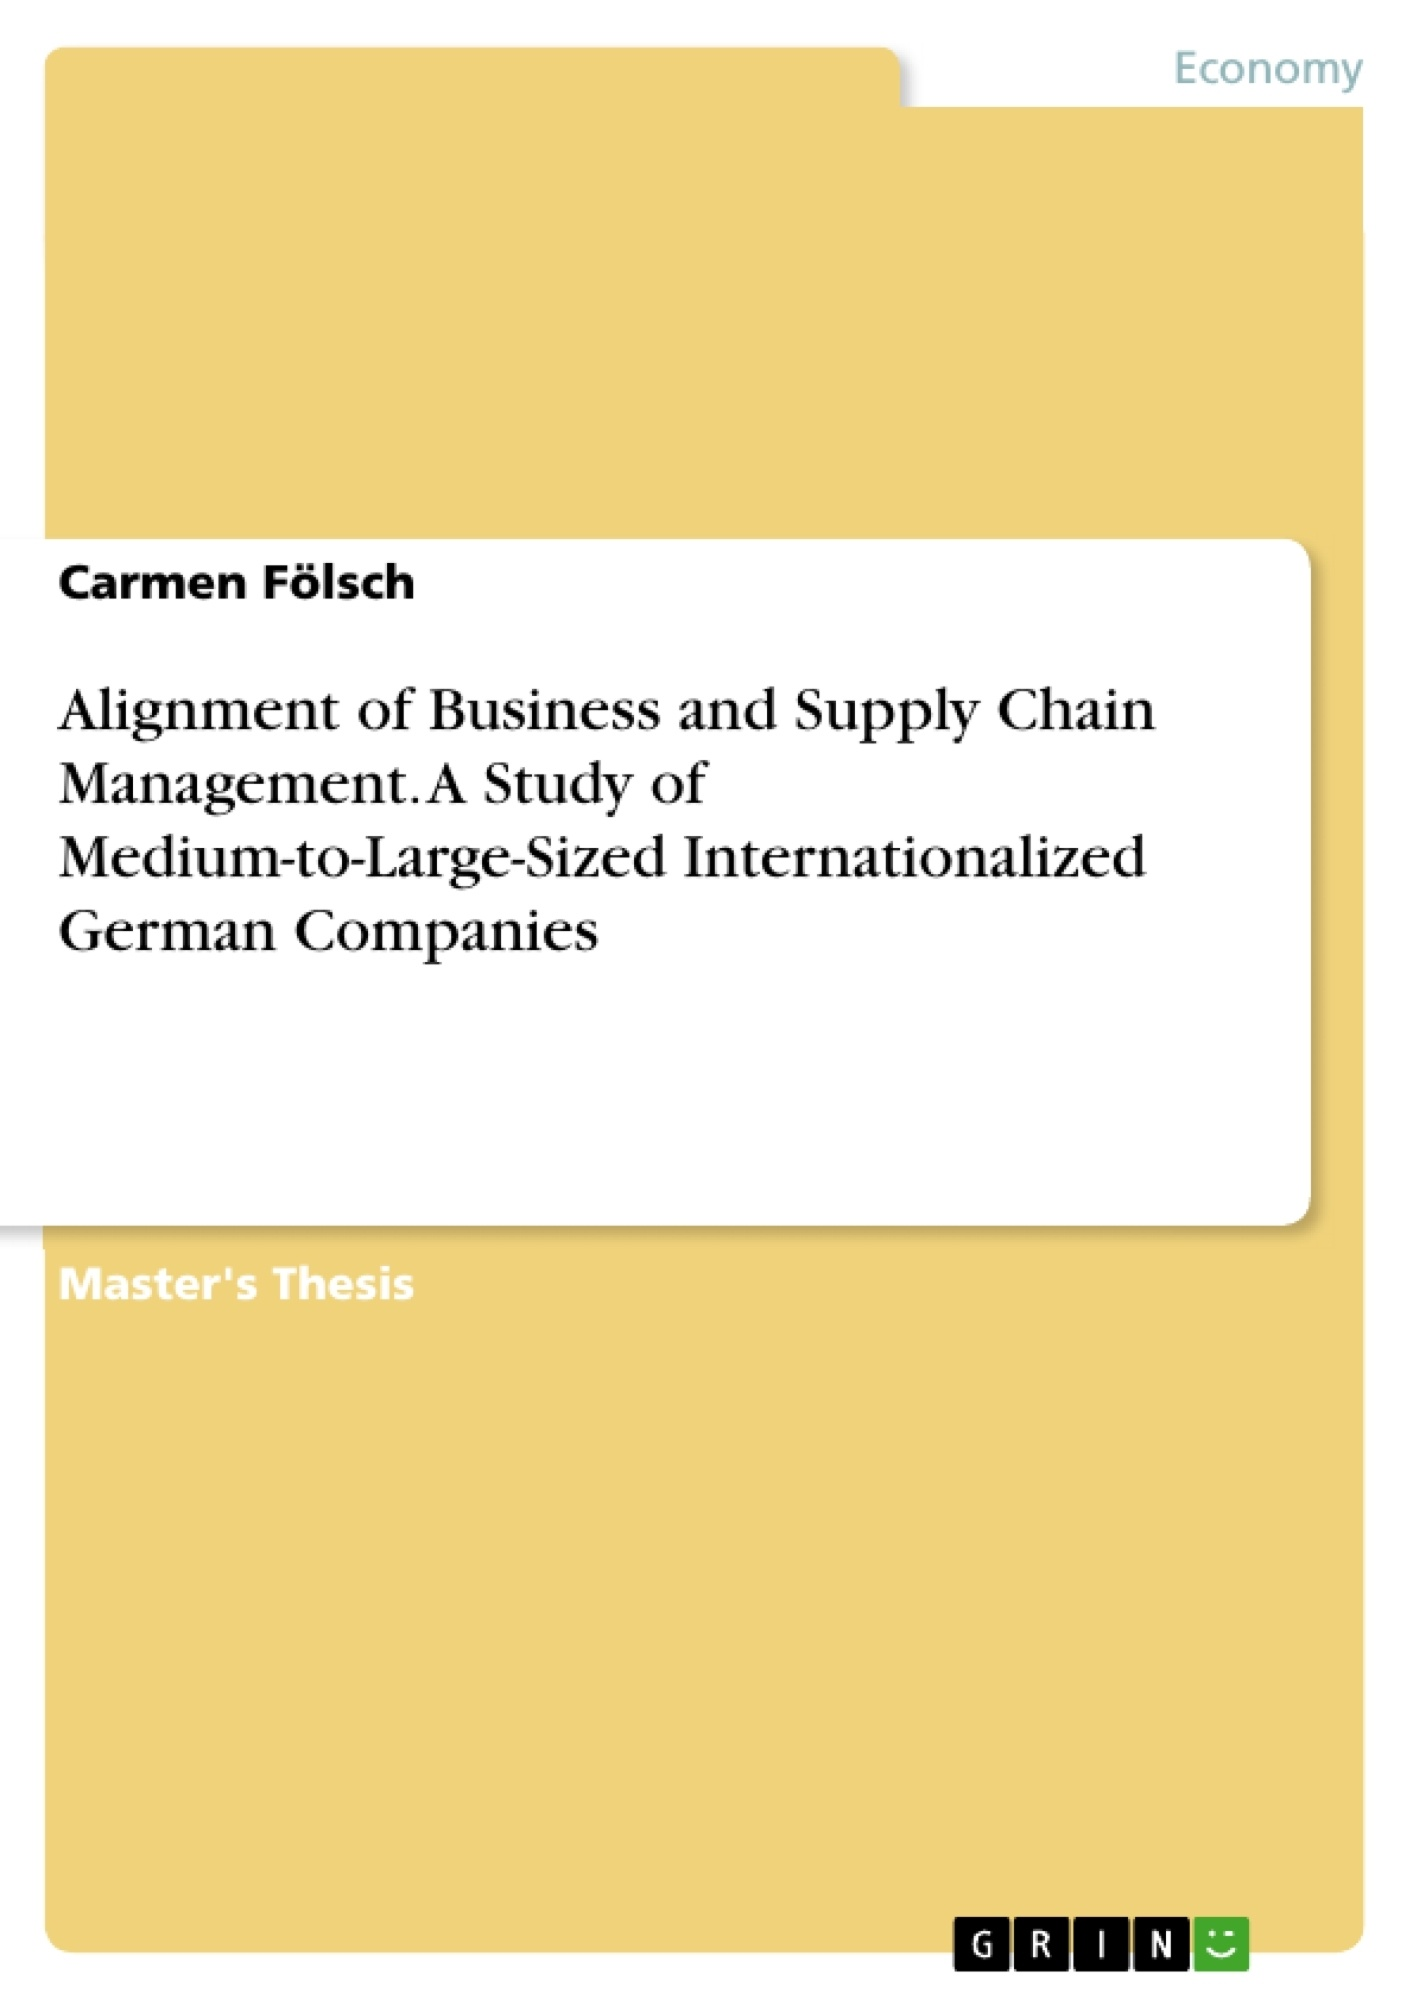 Title: Alignment of Business and Supply Chain Management. A Study of Medium-to-Large-Sized Internationalized German Companies